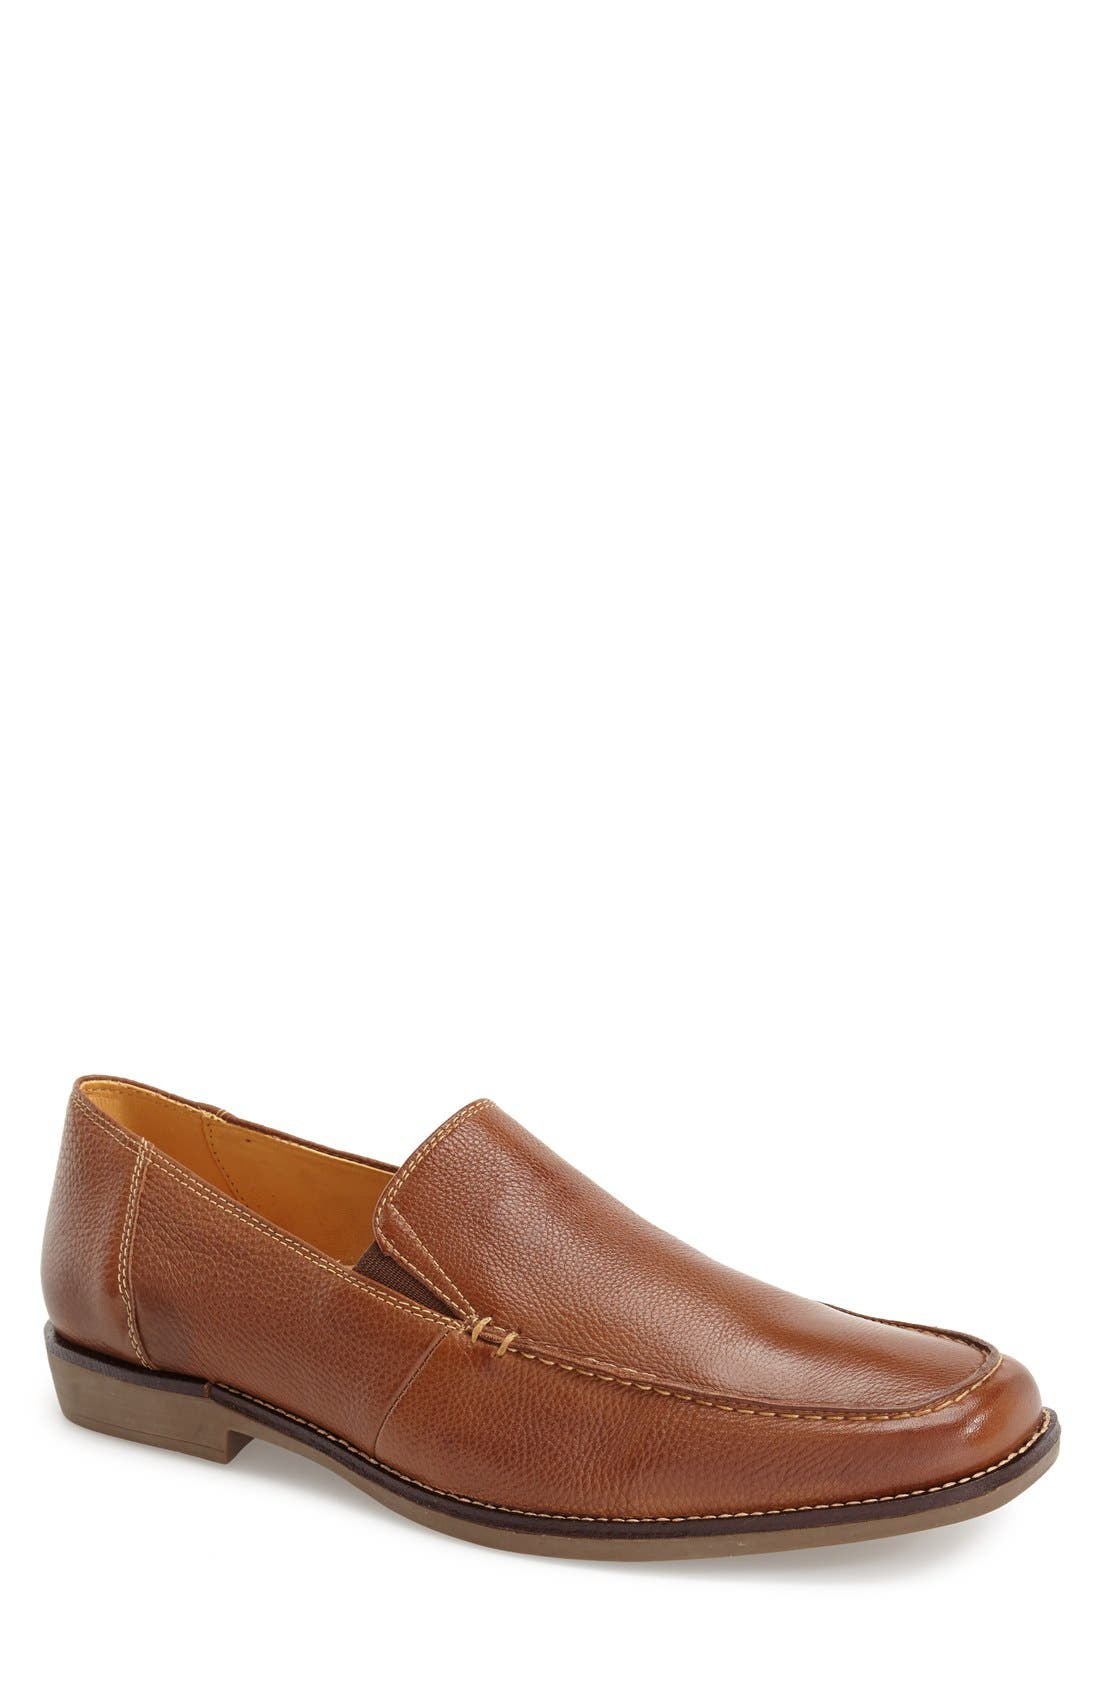 Alternate Image 1 Selected - Sandro Moscoloni 'Easy' Leather Venetian Loafer (Men)